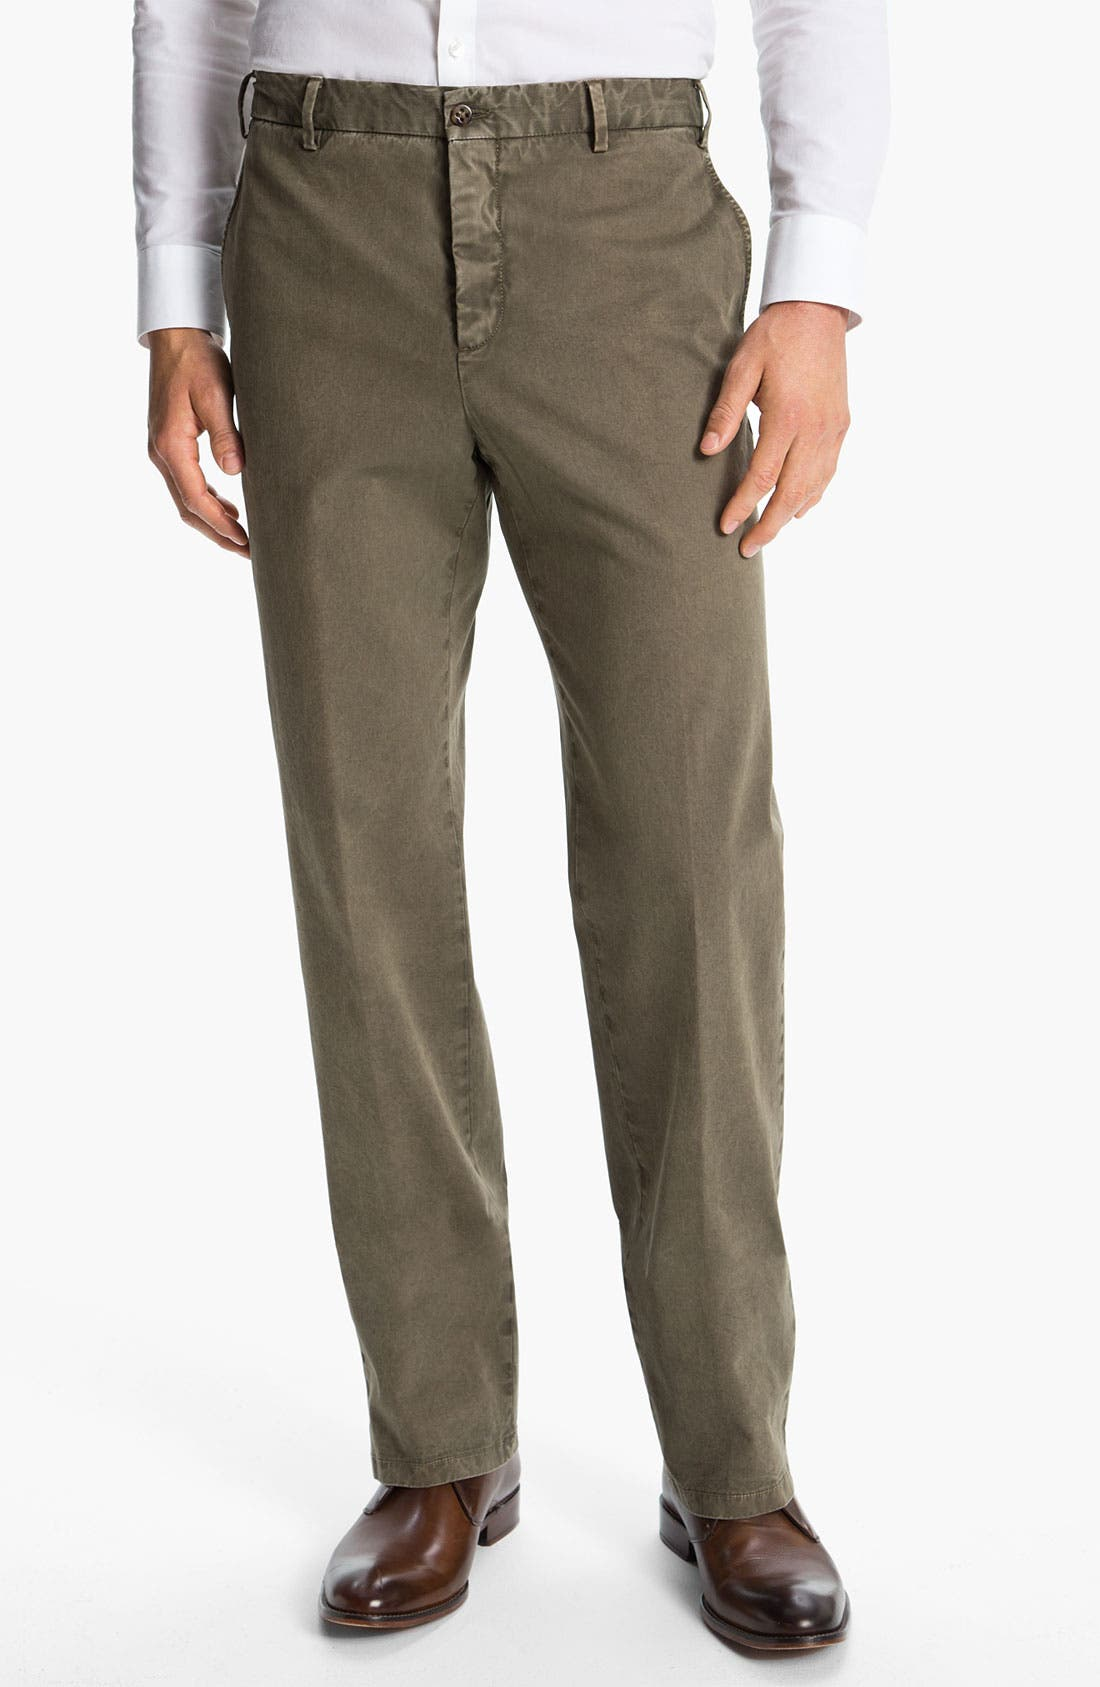 Alternate Image 1 Selected - Zanella 'Devon' Flat Front Cotton Trousers